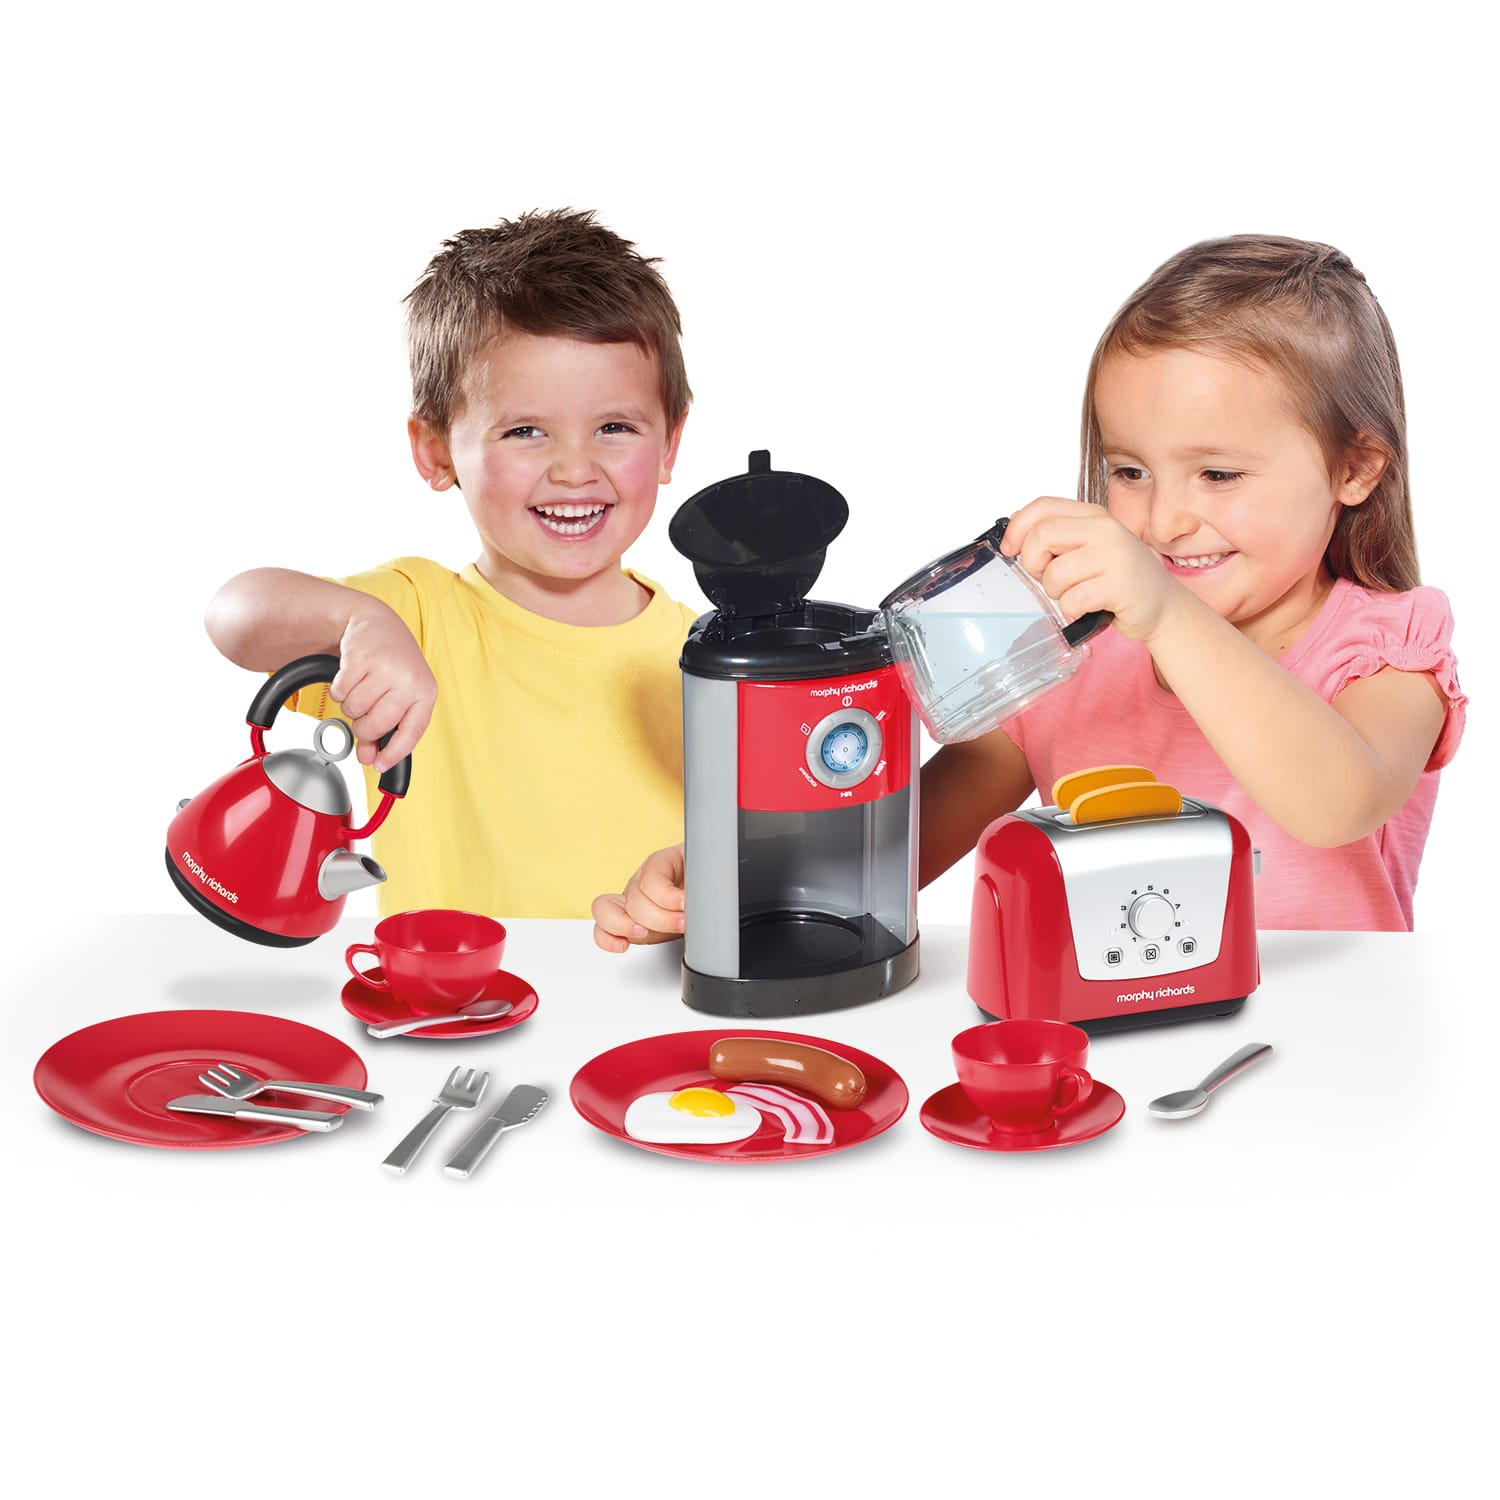 Toy Morphy Richards Kitchen Set For Realistic Role Play